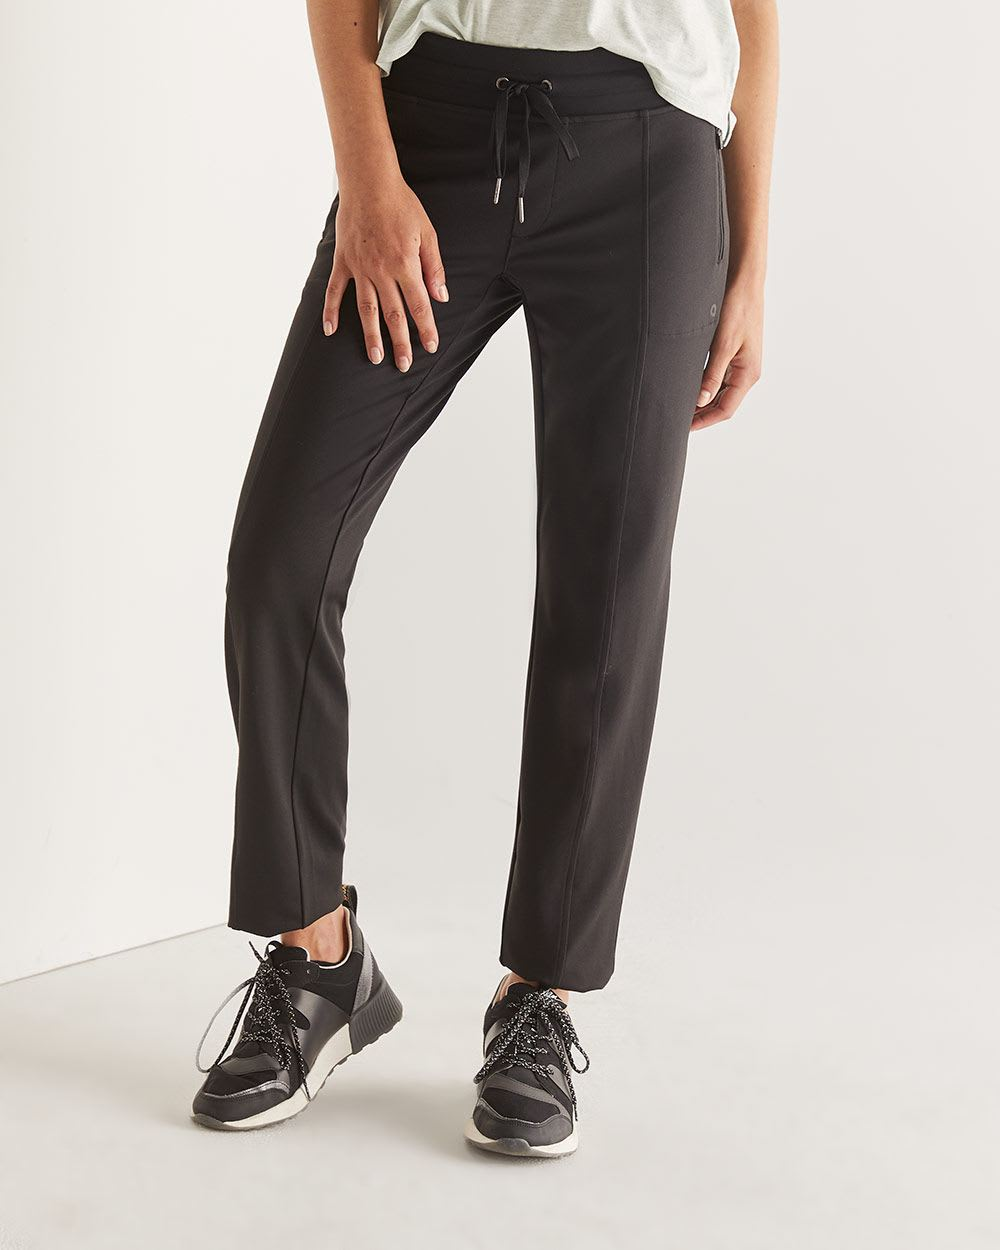 Hyba Urban Black Slim Pants - Tall